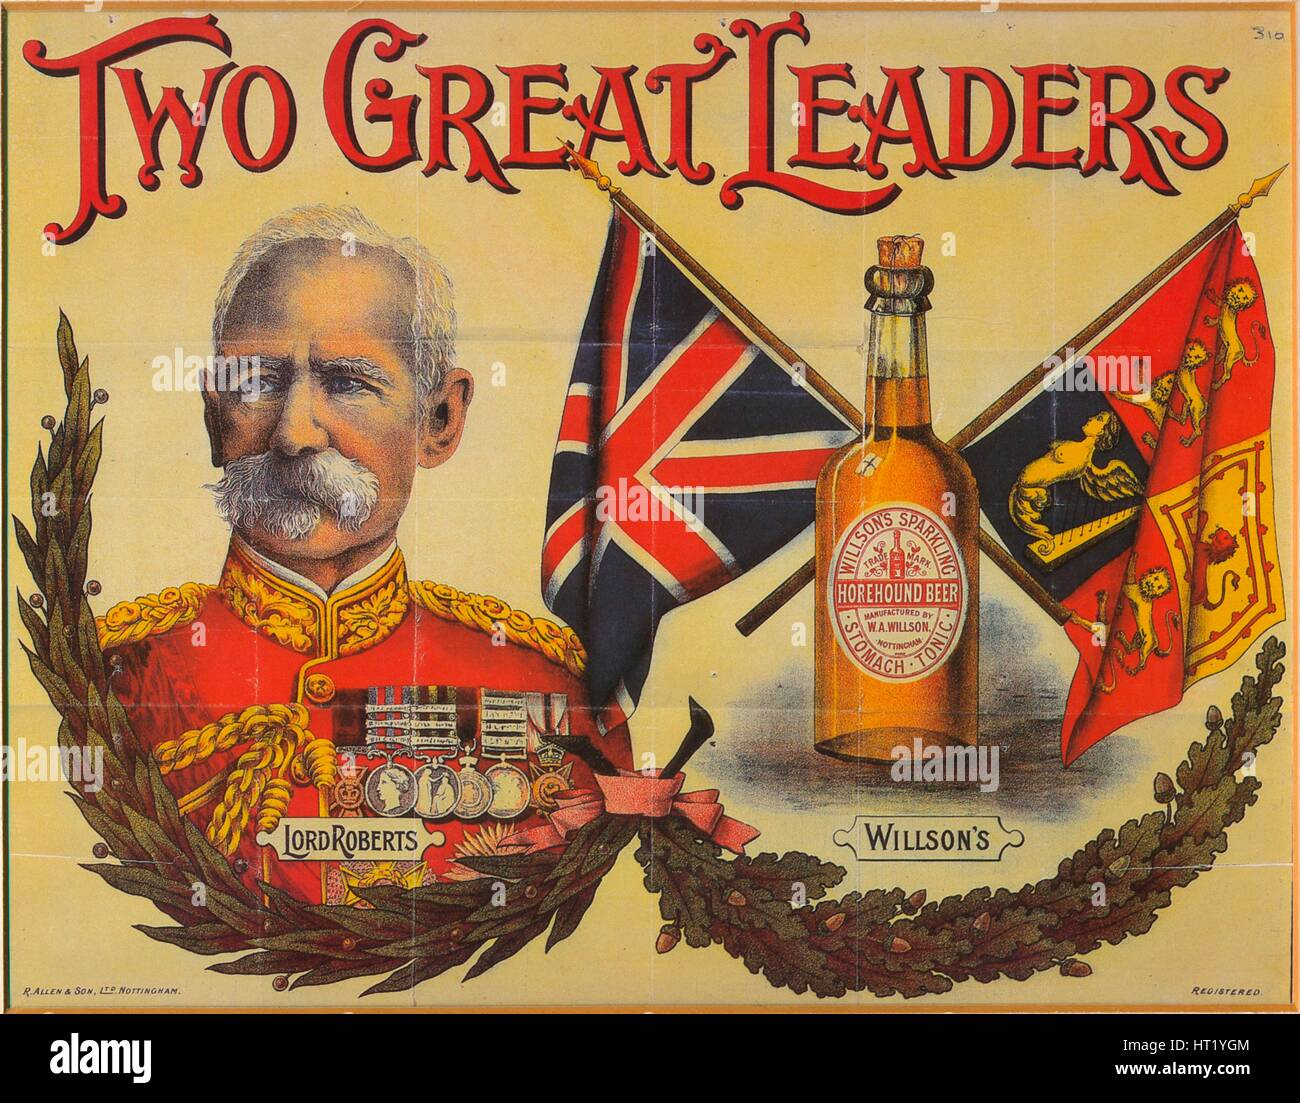 Two Great Leaders, c19th century. Artist: Unknown - Stock Image